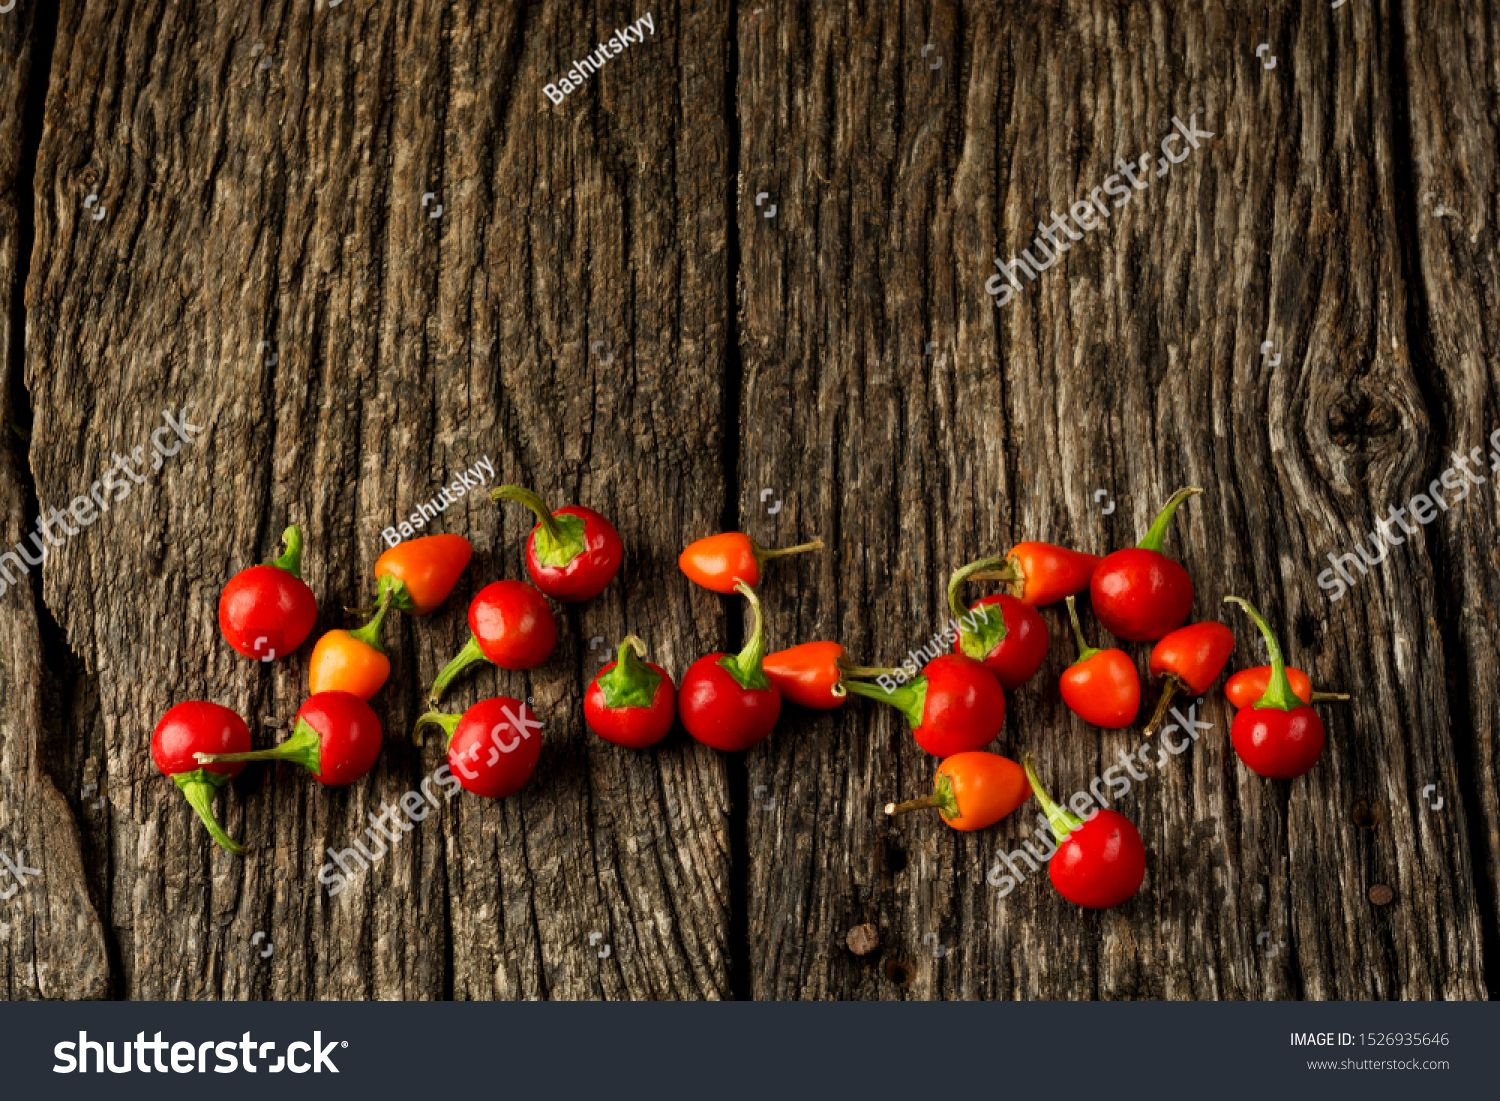 Food and drink still life concept Raw chilli peppers on a rustic wooden table Selective focus top view flat lay overhead